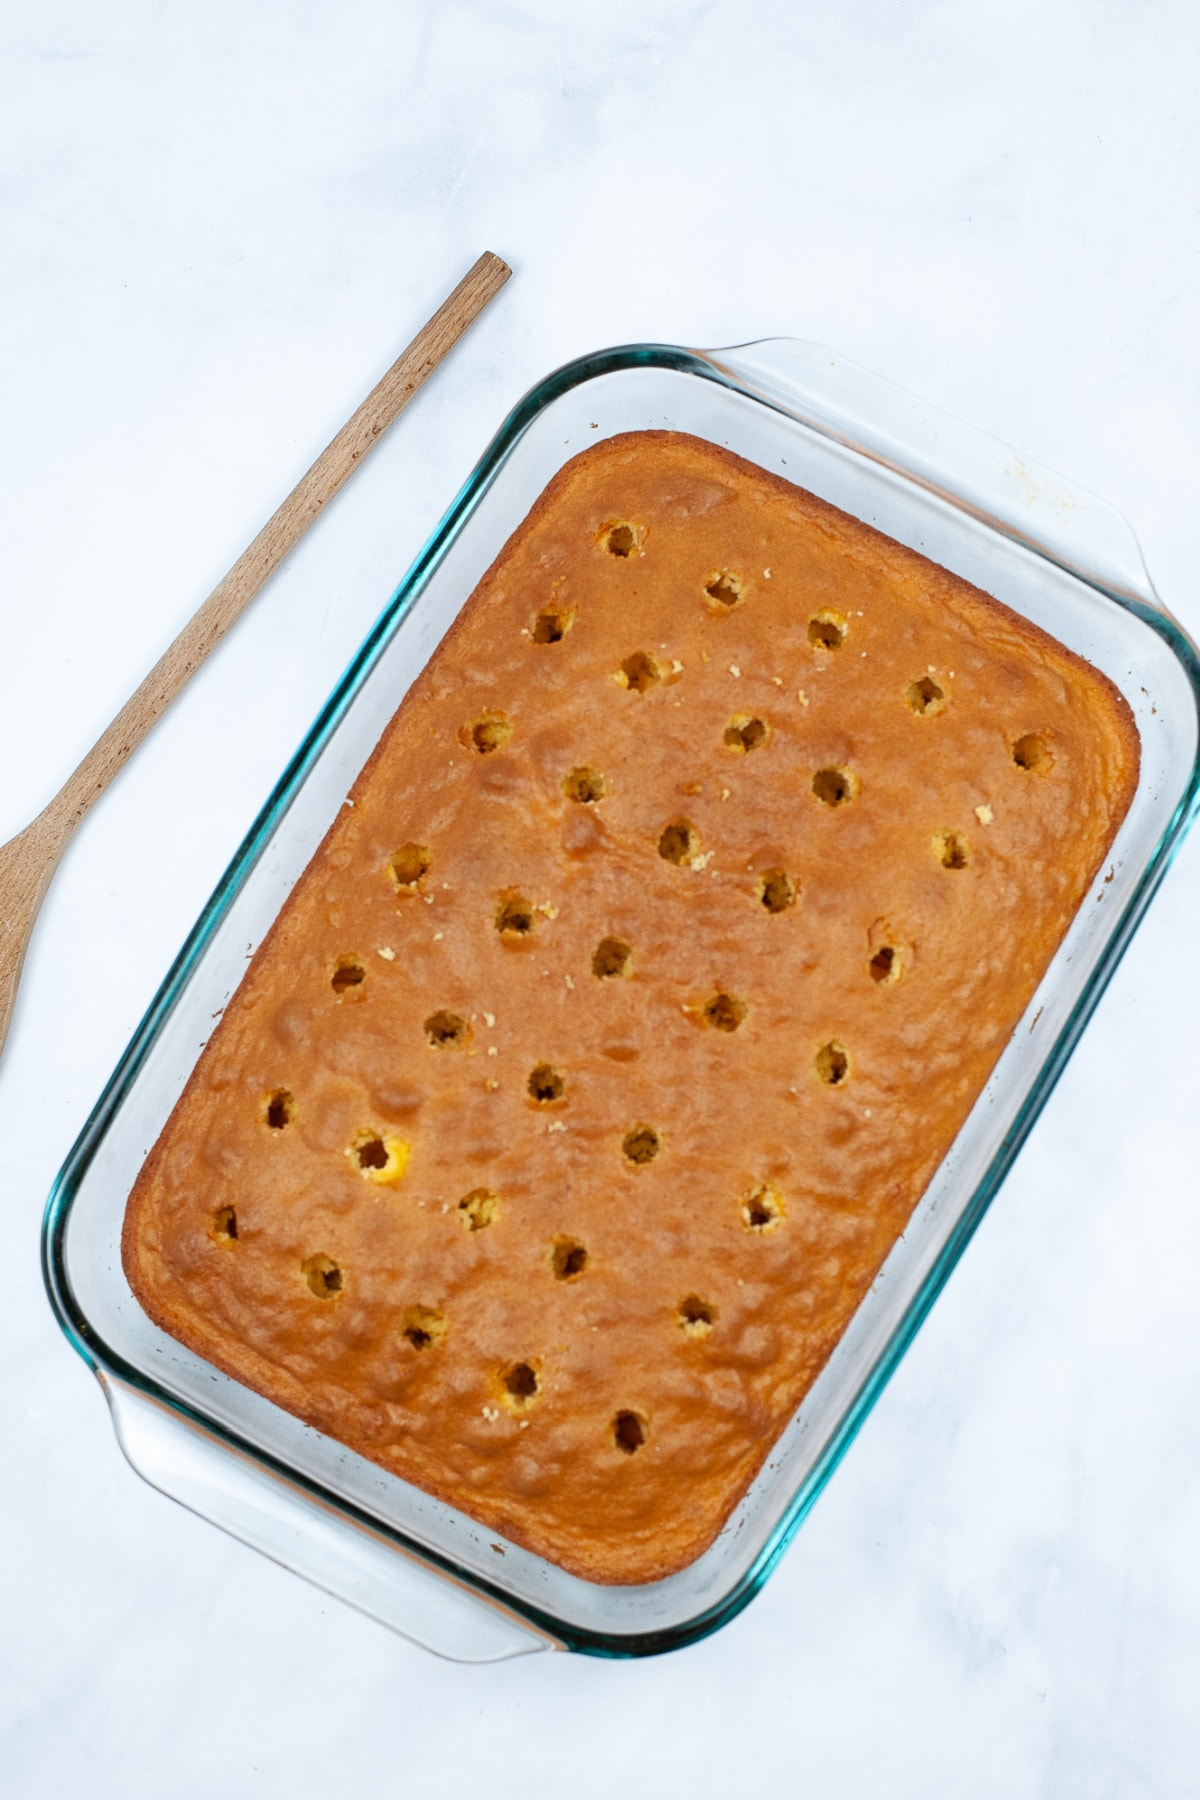 Cake with holes poked in it